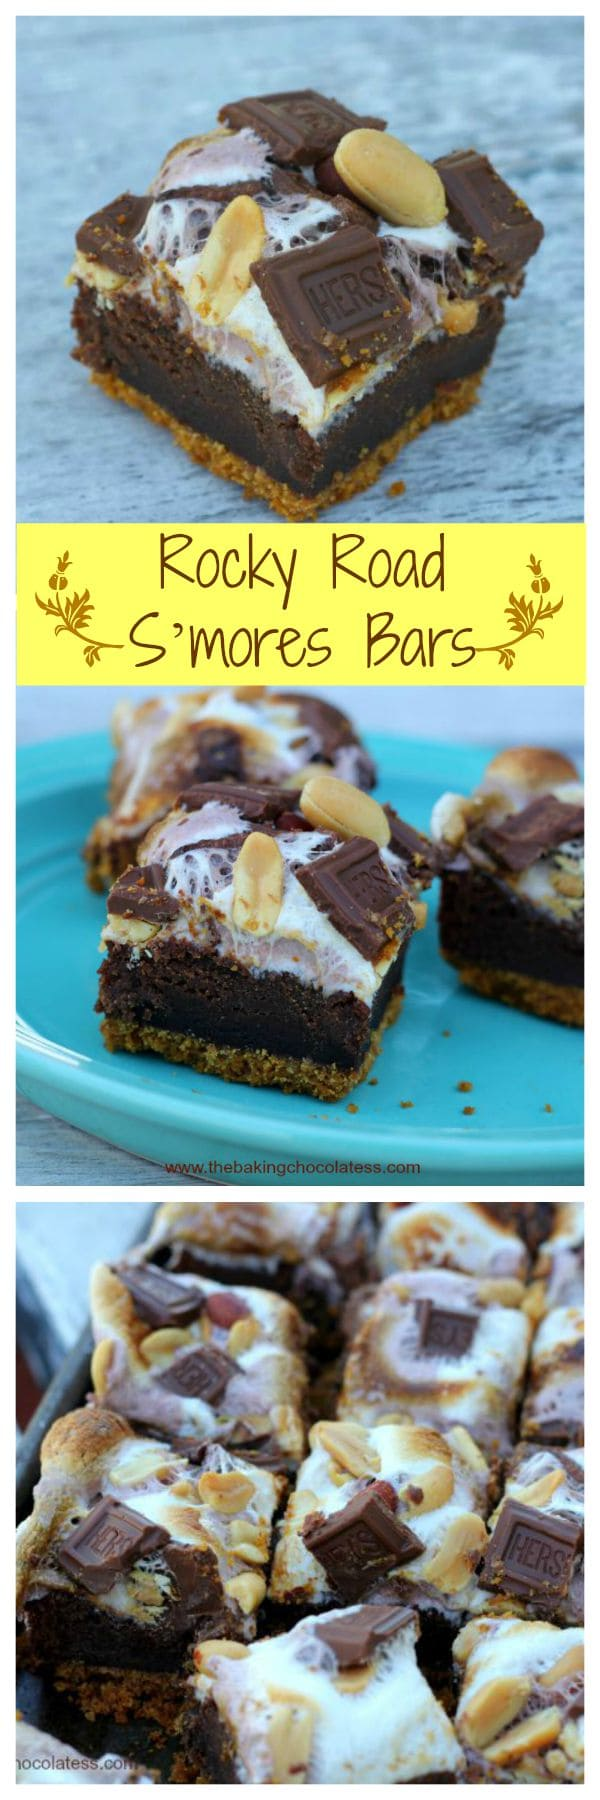 Rocky Road S'mores Bars